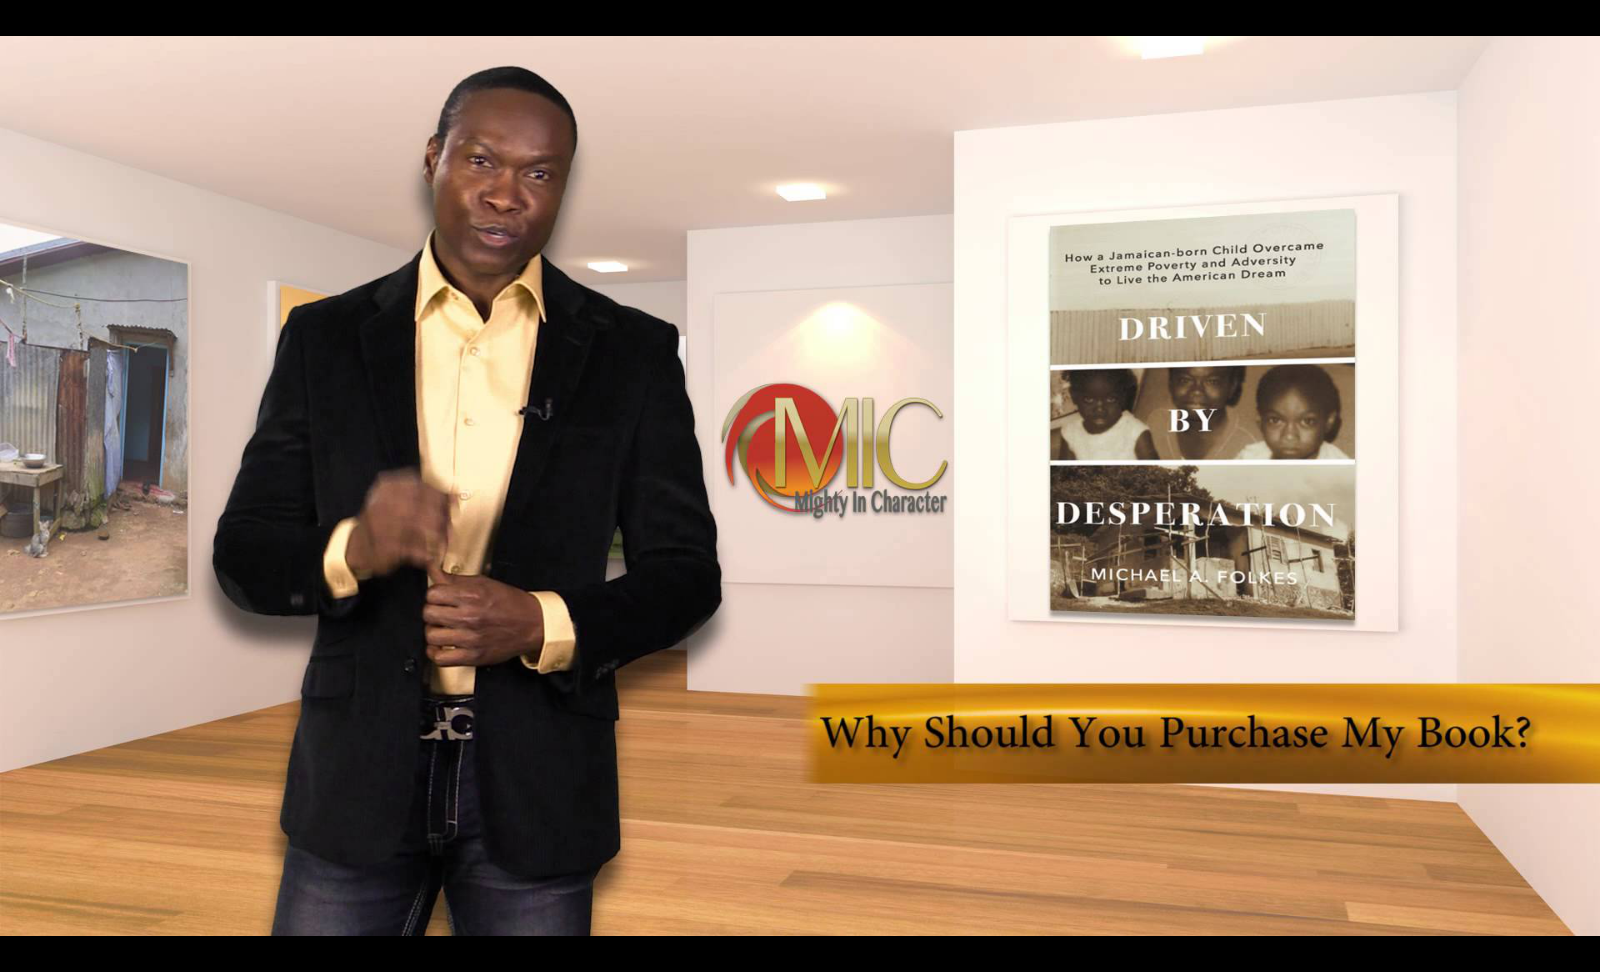 Why should you purchase my book